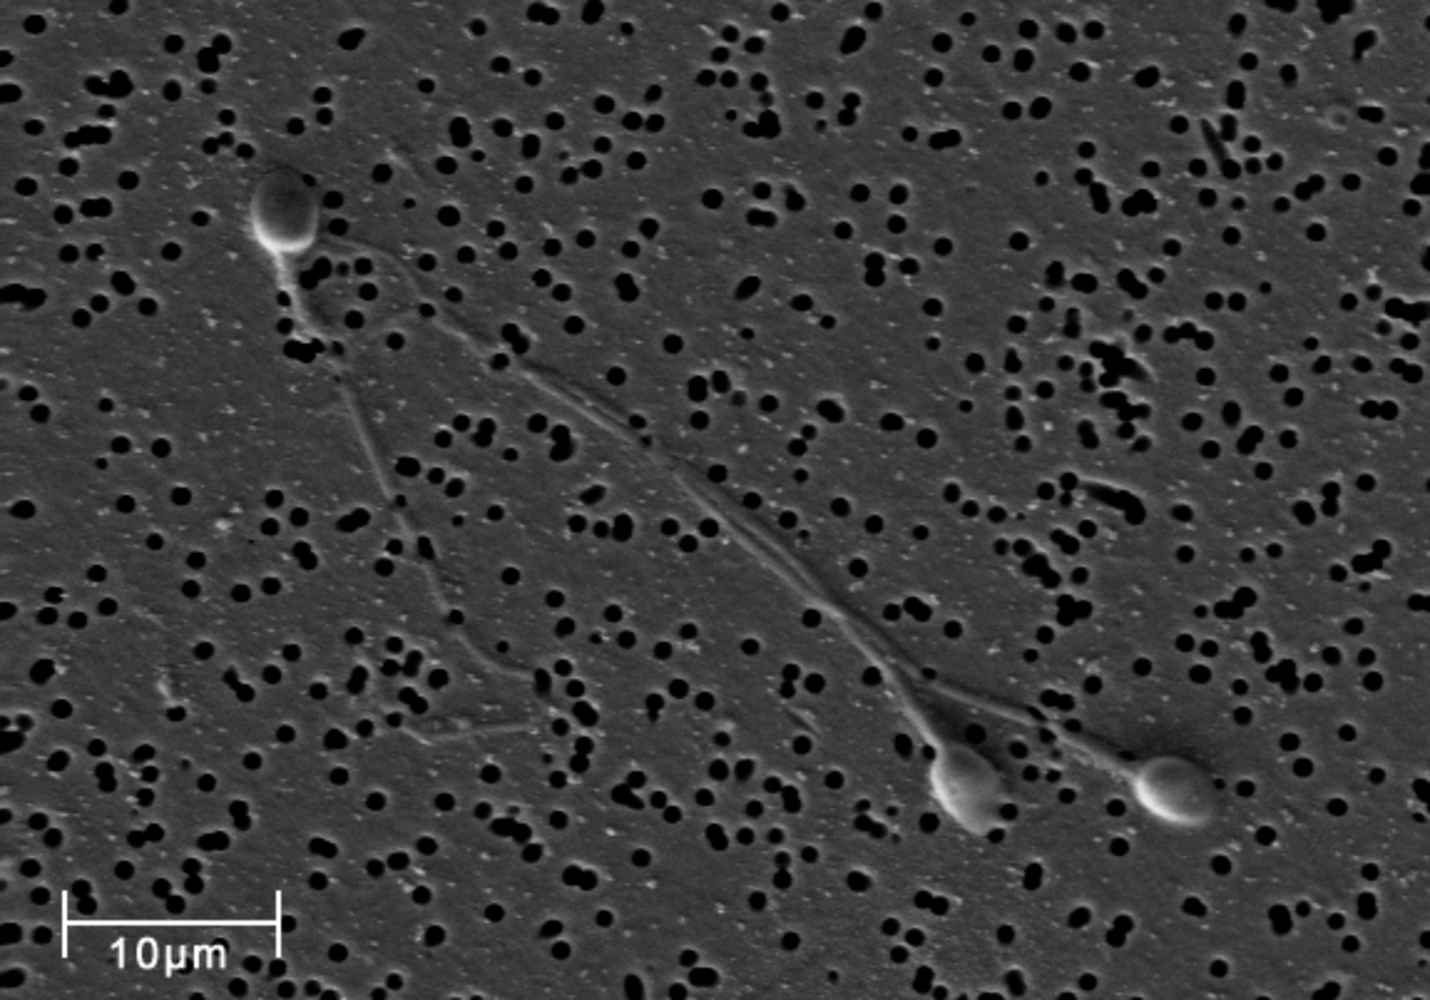 Micrograph by scanning electron microscope (SEM) of human sperm cells magnified 3140 times